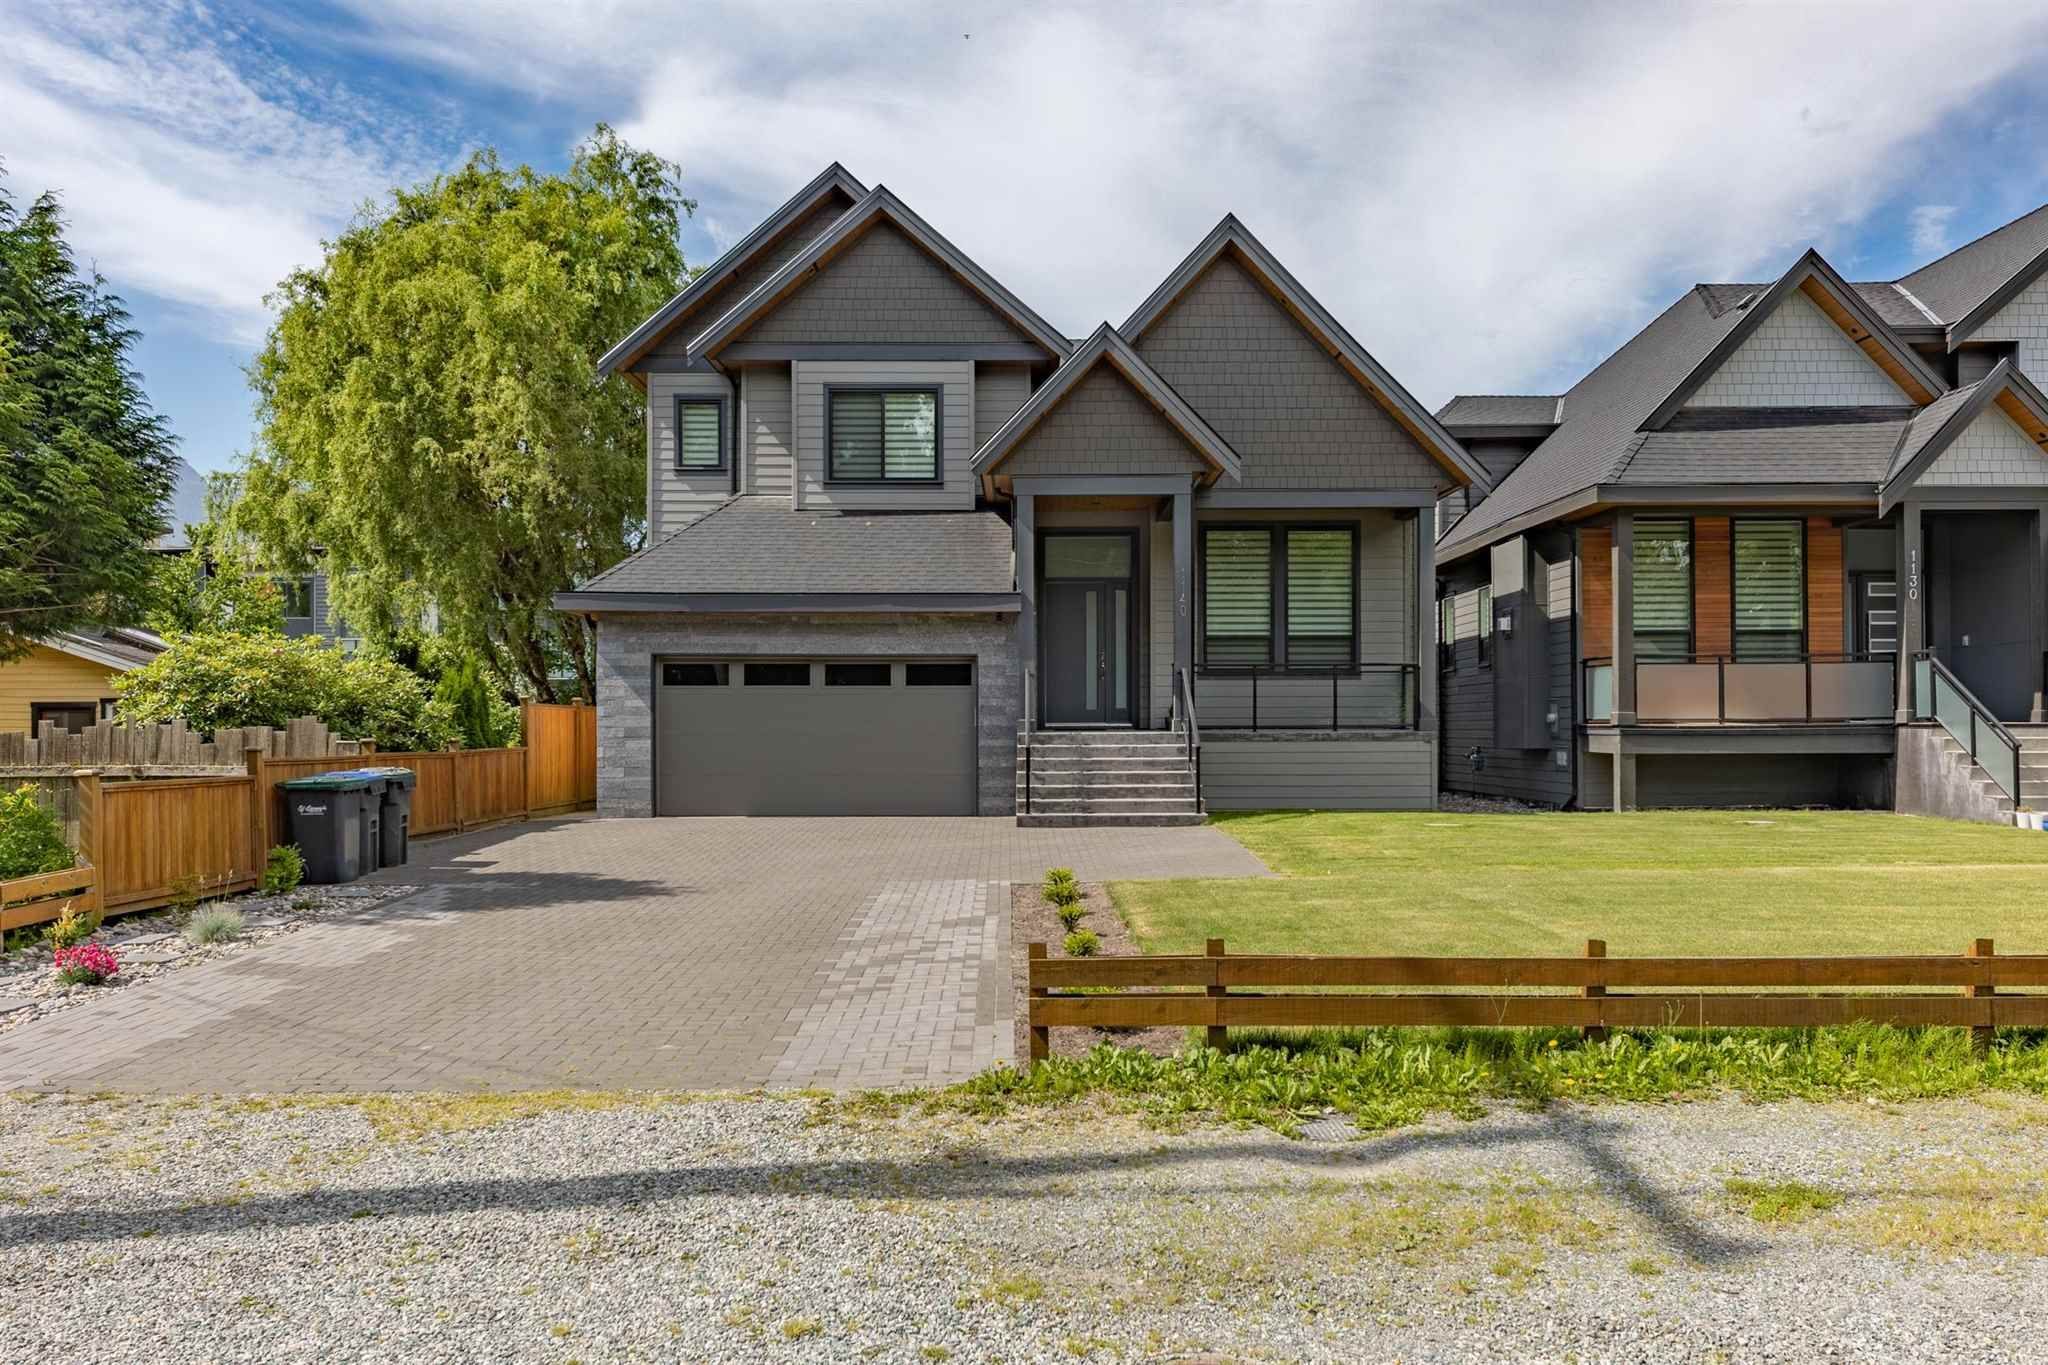 Main Photo: 1140 WILSON Crescent in Squamish: Dentville House for sale : MLS®# R2593266